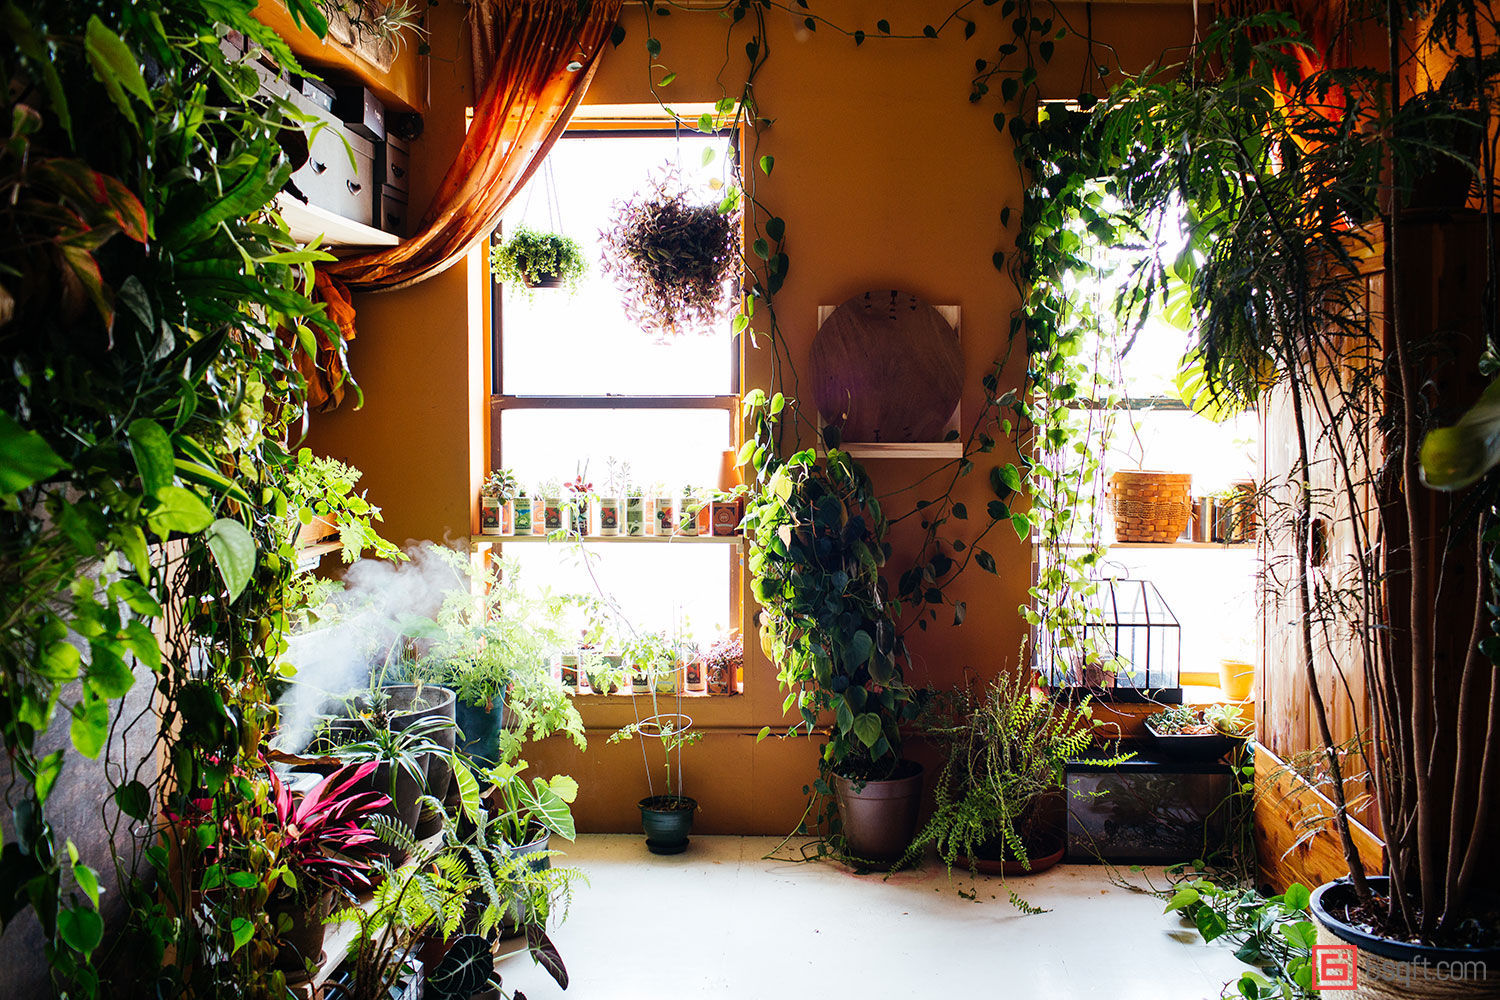 15 Indoor Air-purifying Plants For Your Apartment Or Home